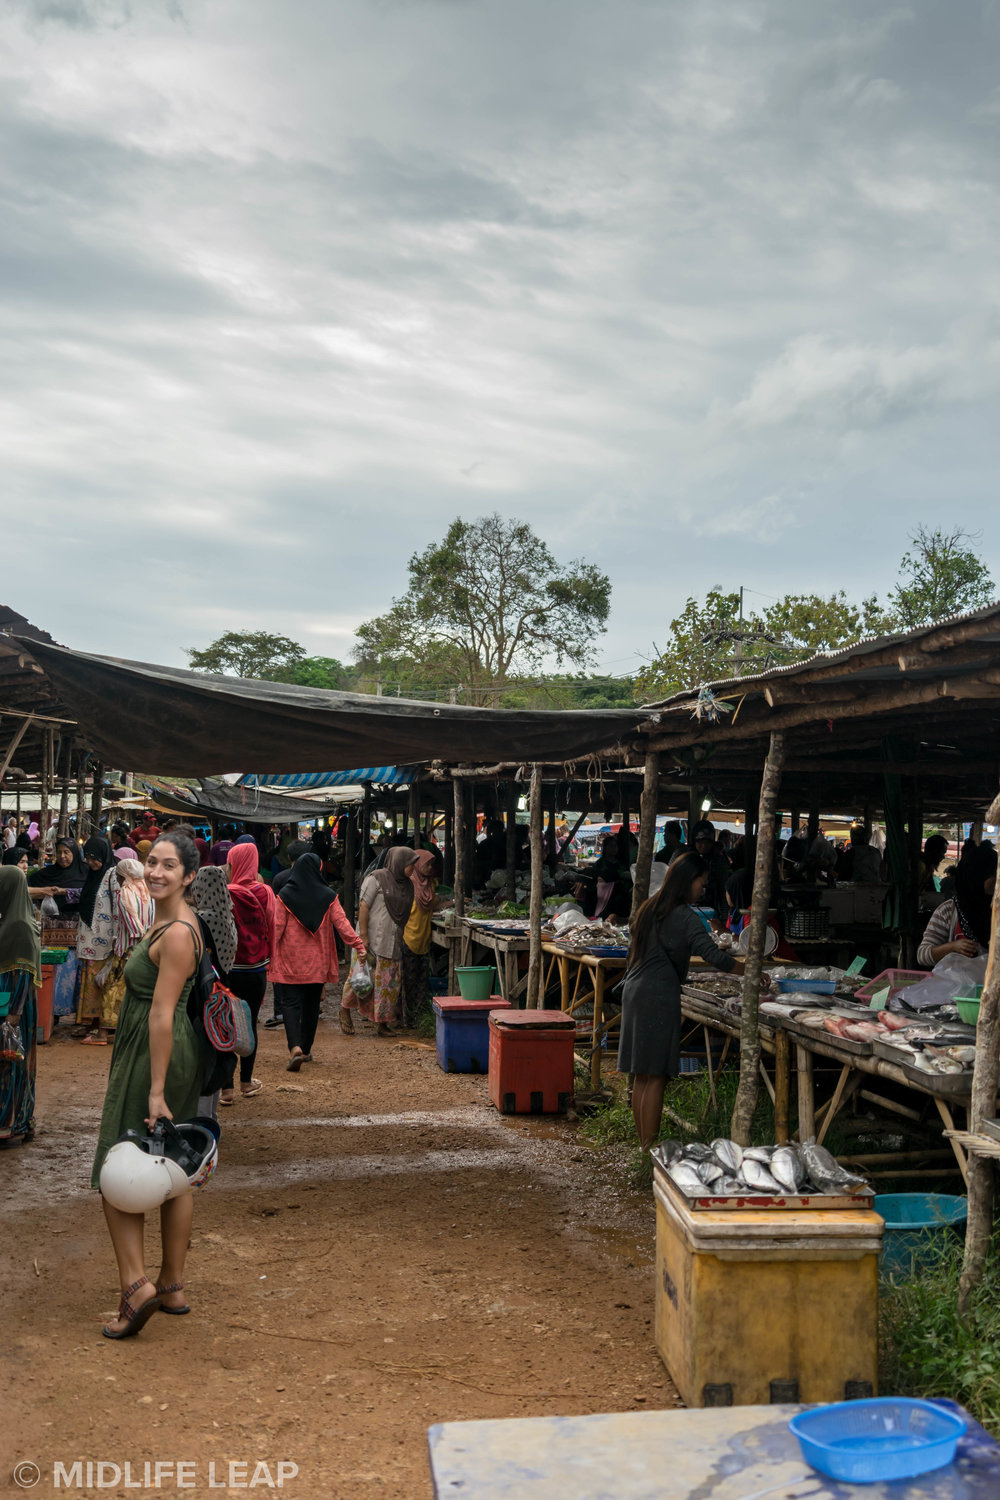 Exploring a local market